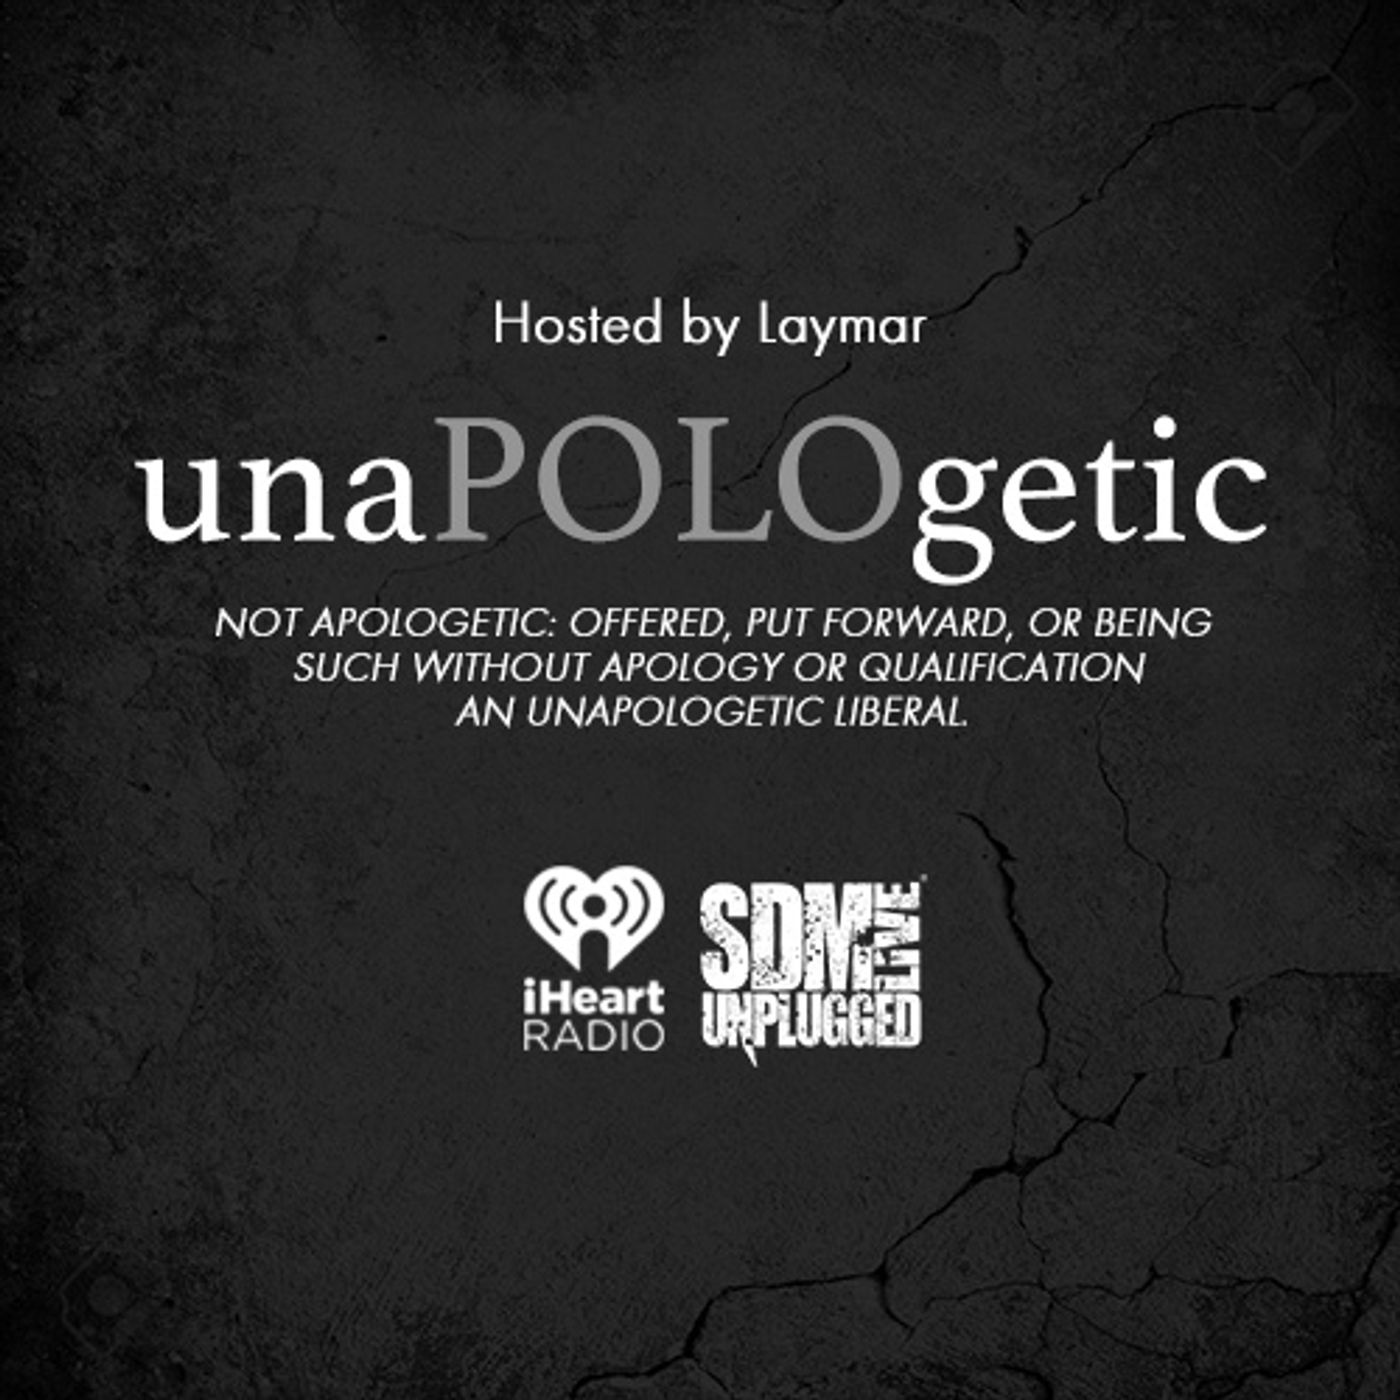 unaPOLOgetic | The Debate